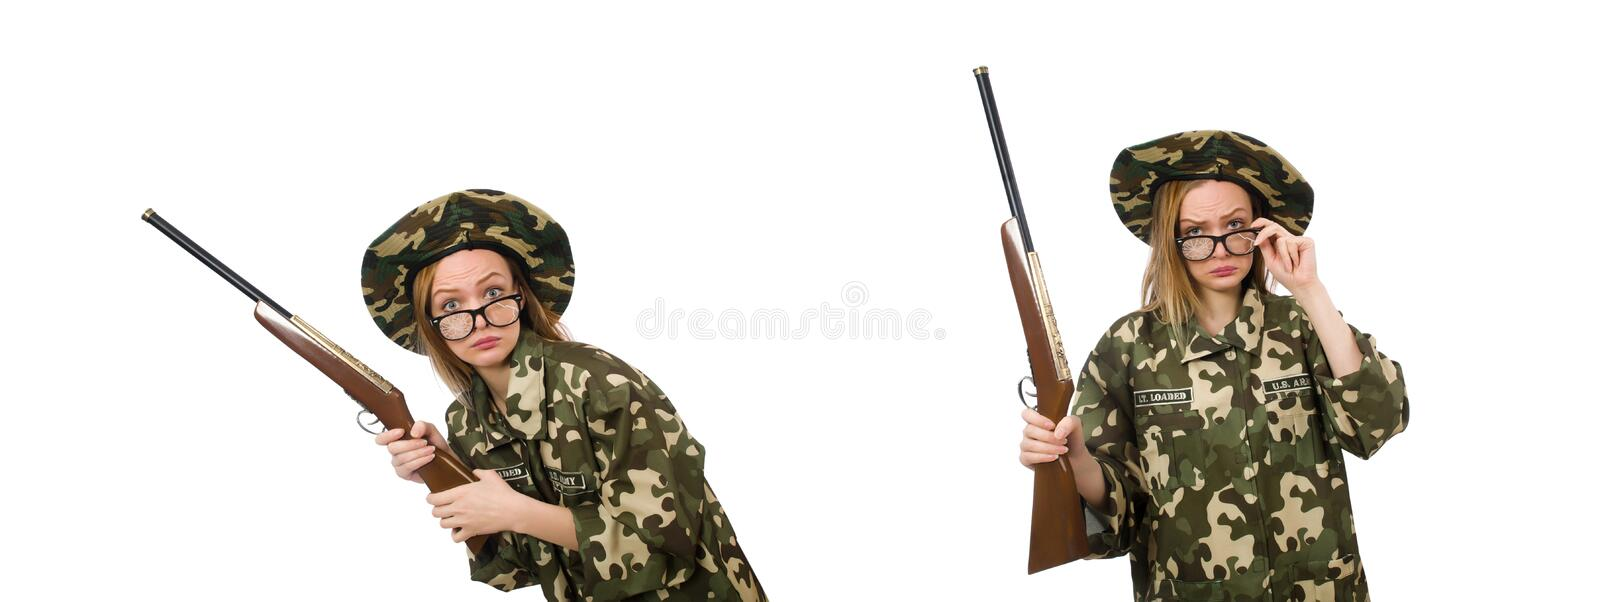 The girl in military uniform holding the gun isolated on white royalty free stock images